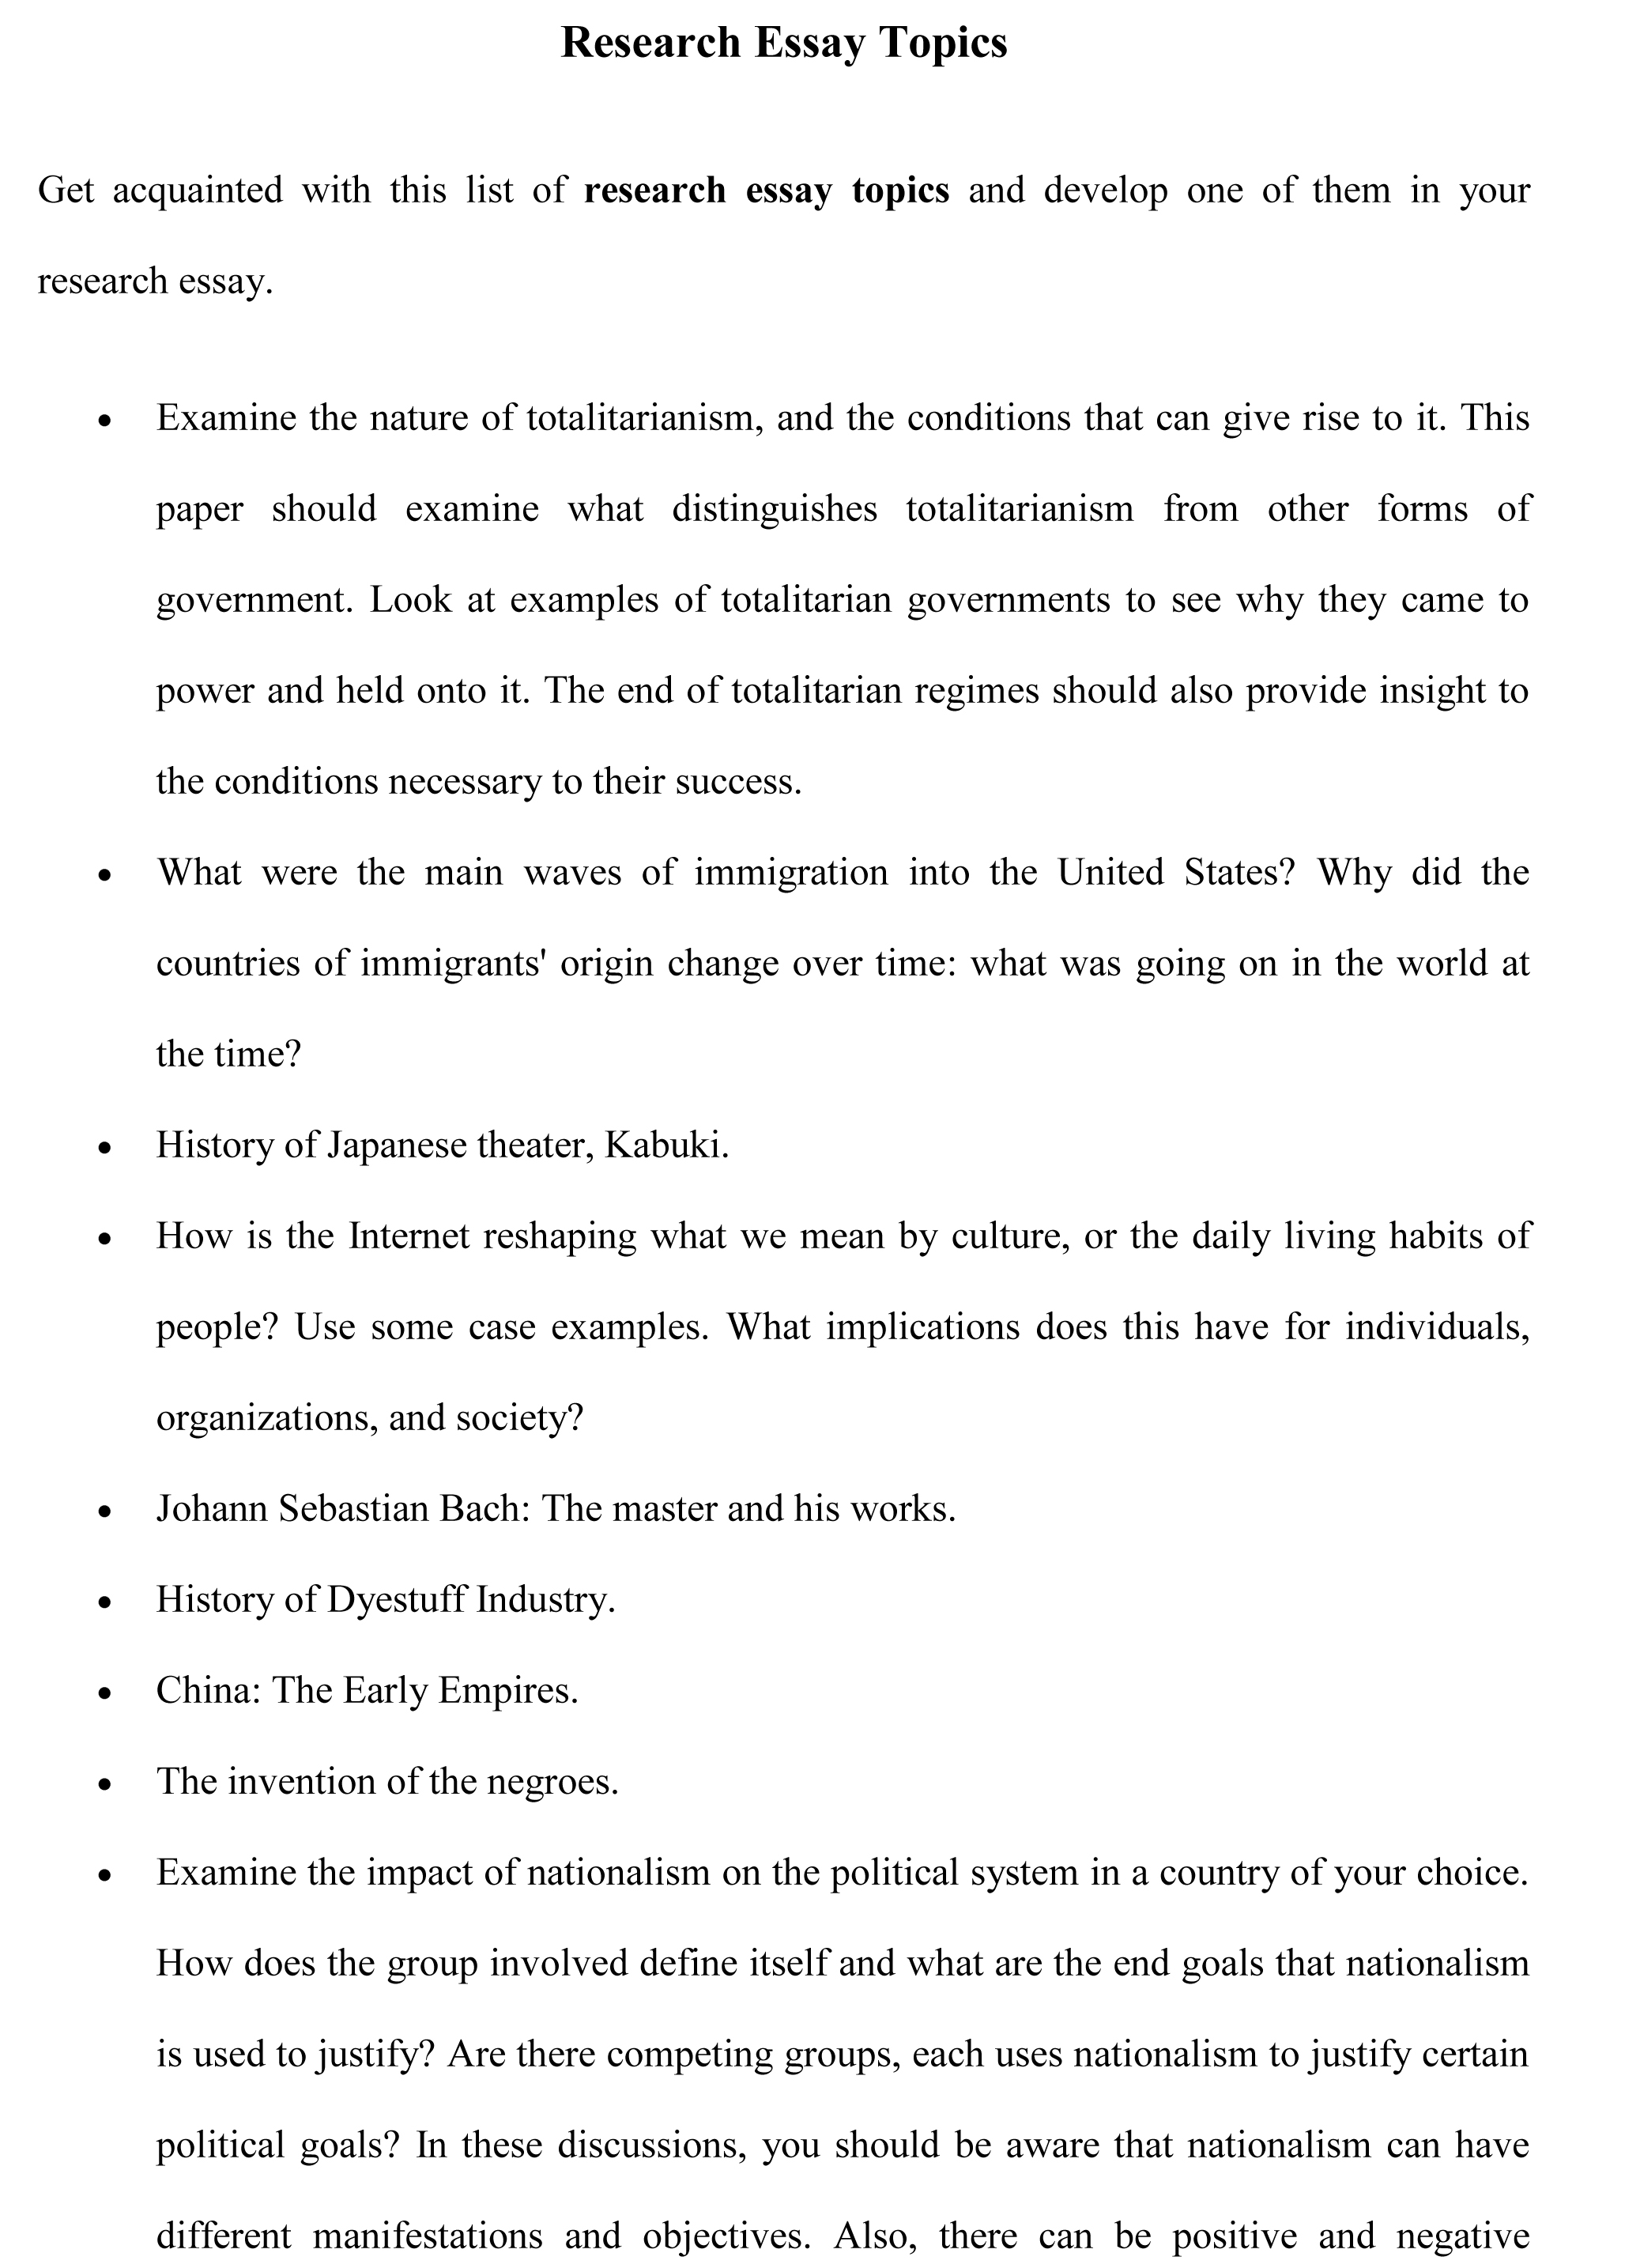 006 Research Paper Essay Topics Sample Controversial Outstanding Ideas Full